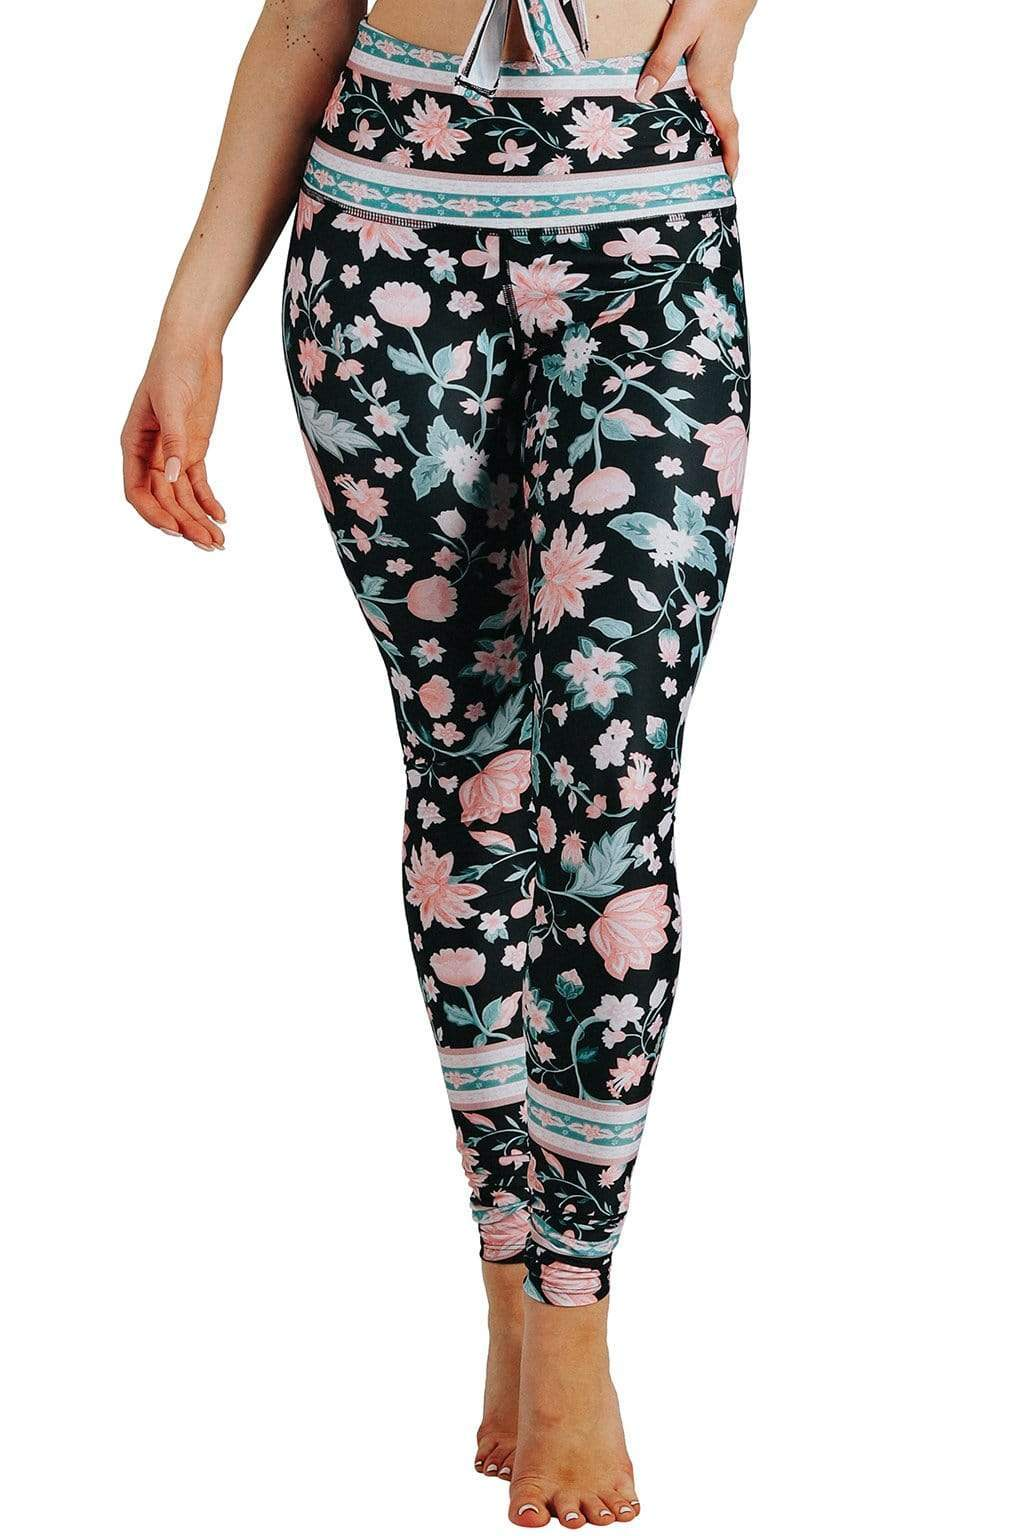 Yoga Democracy Leggings Cotton Candy Wreath Printed Yoga Leggings